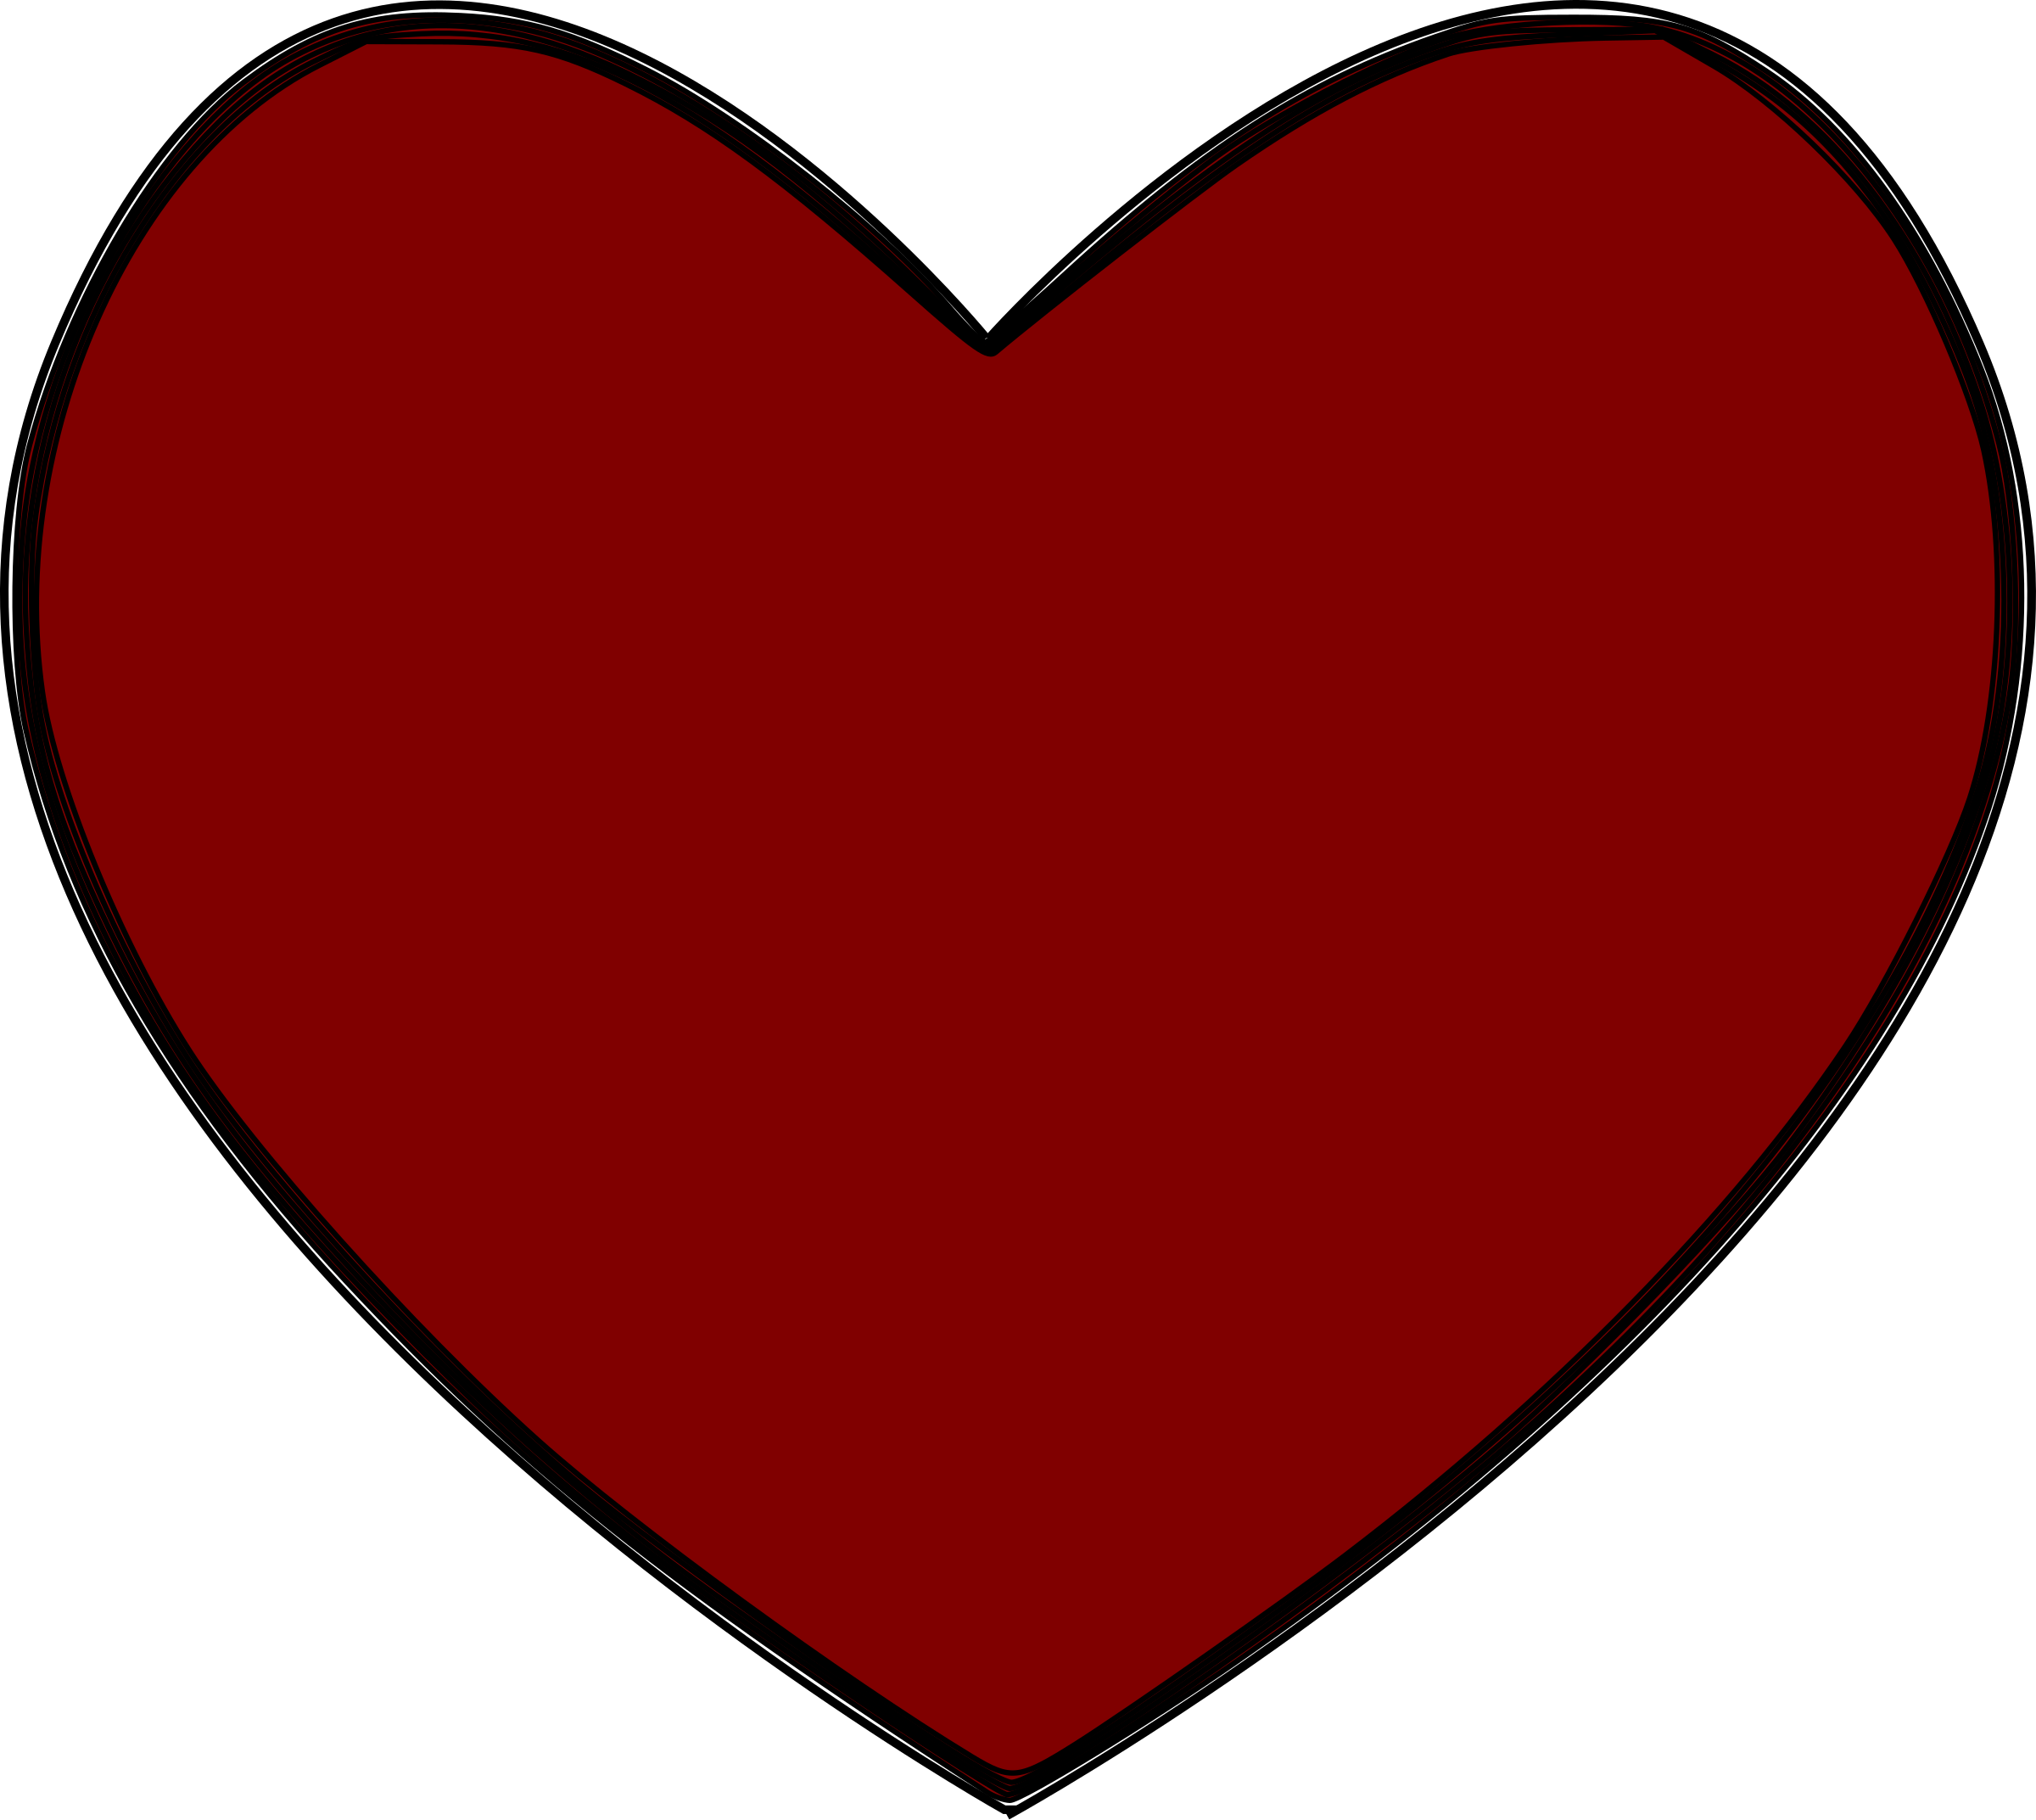 Big Red Heart Picture Free Download Best Big Red Heart Picture On